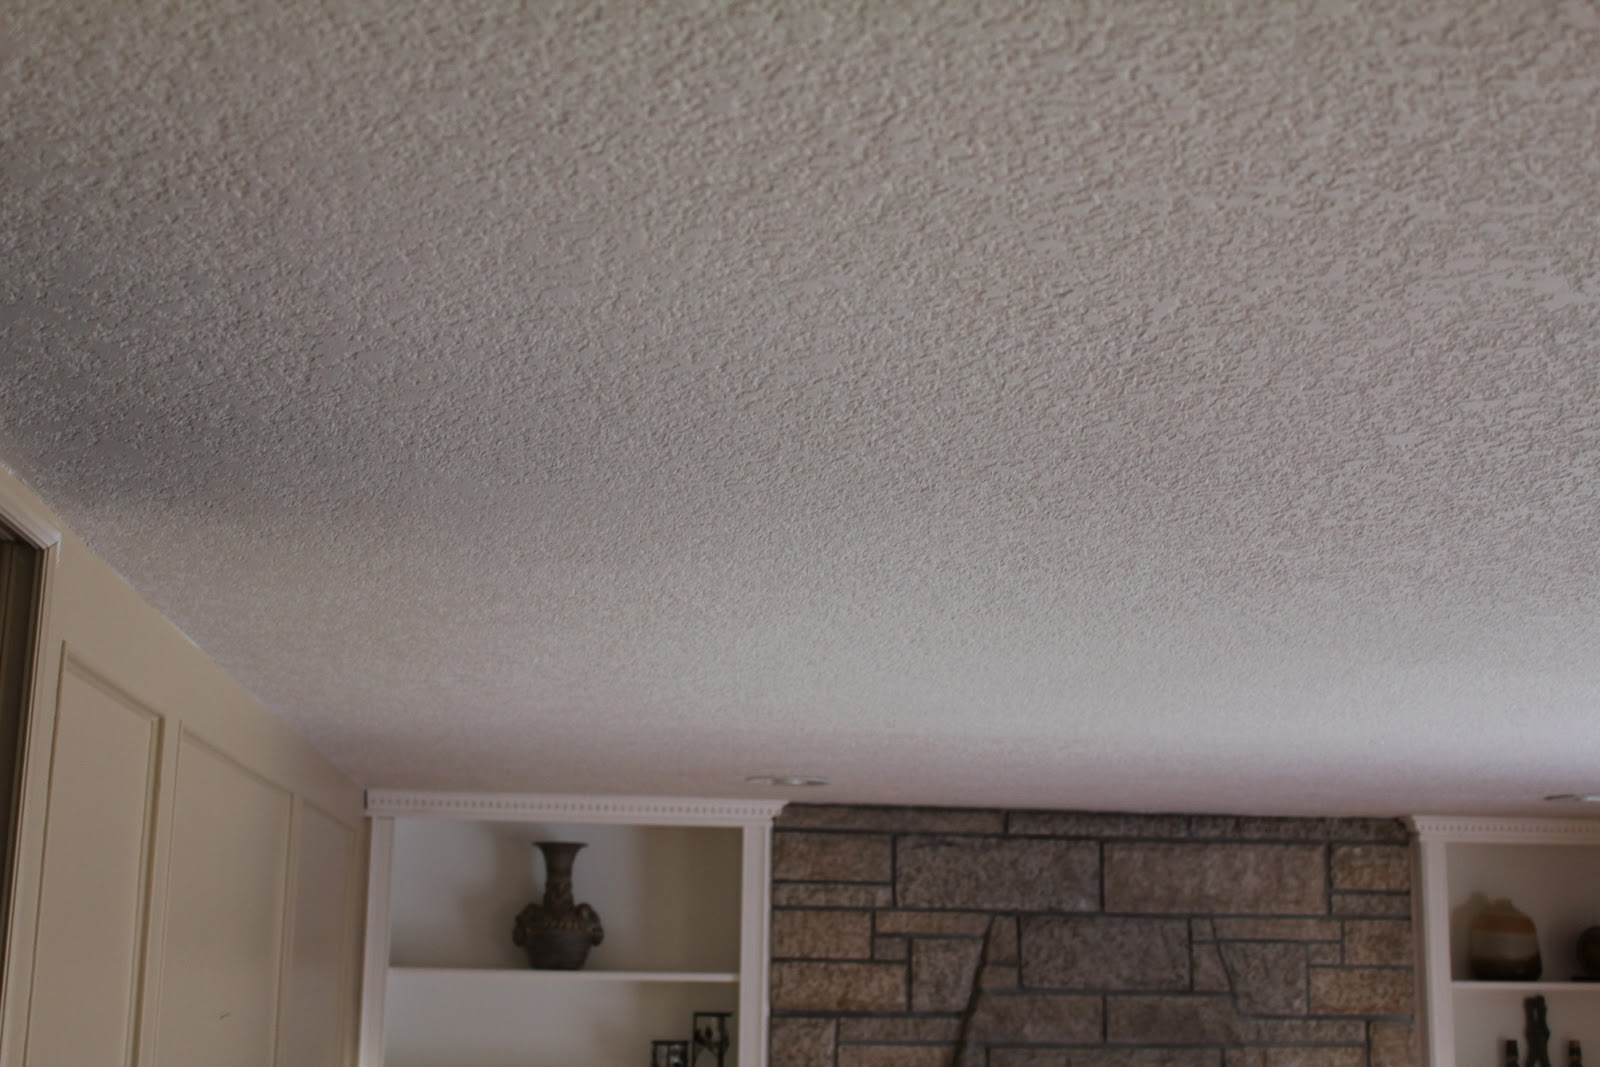 Popcorn texture removal, Knockdown application, step 6: Priming with latex paint and applying ...